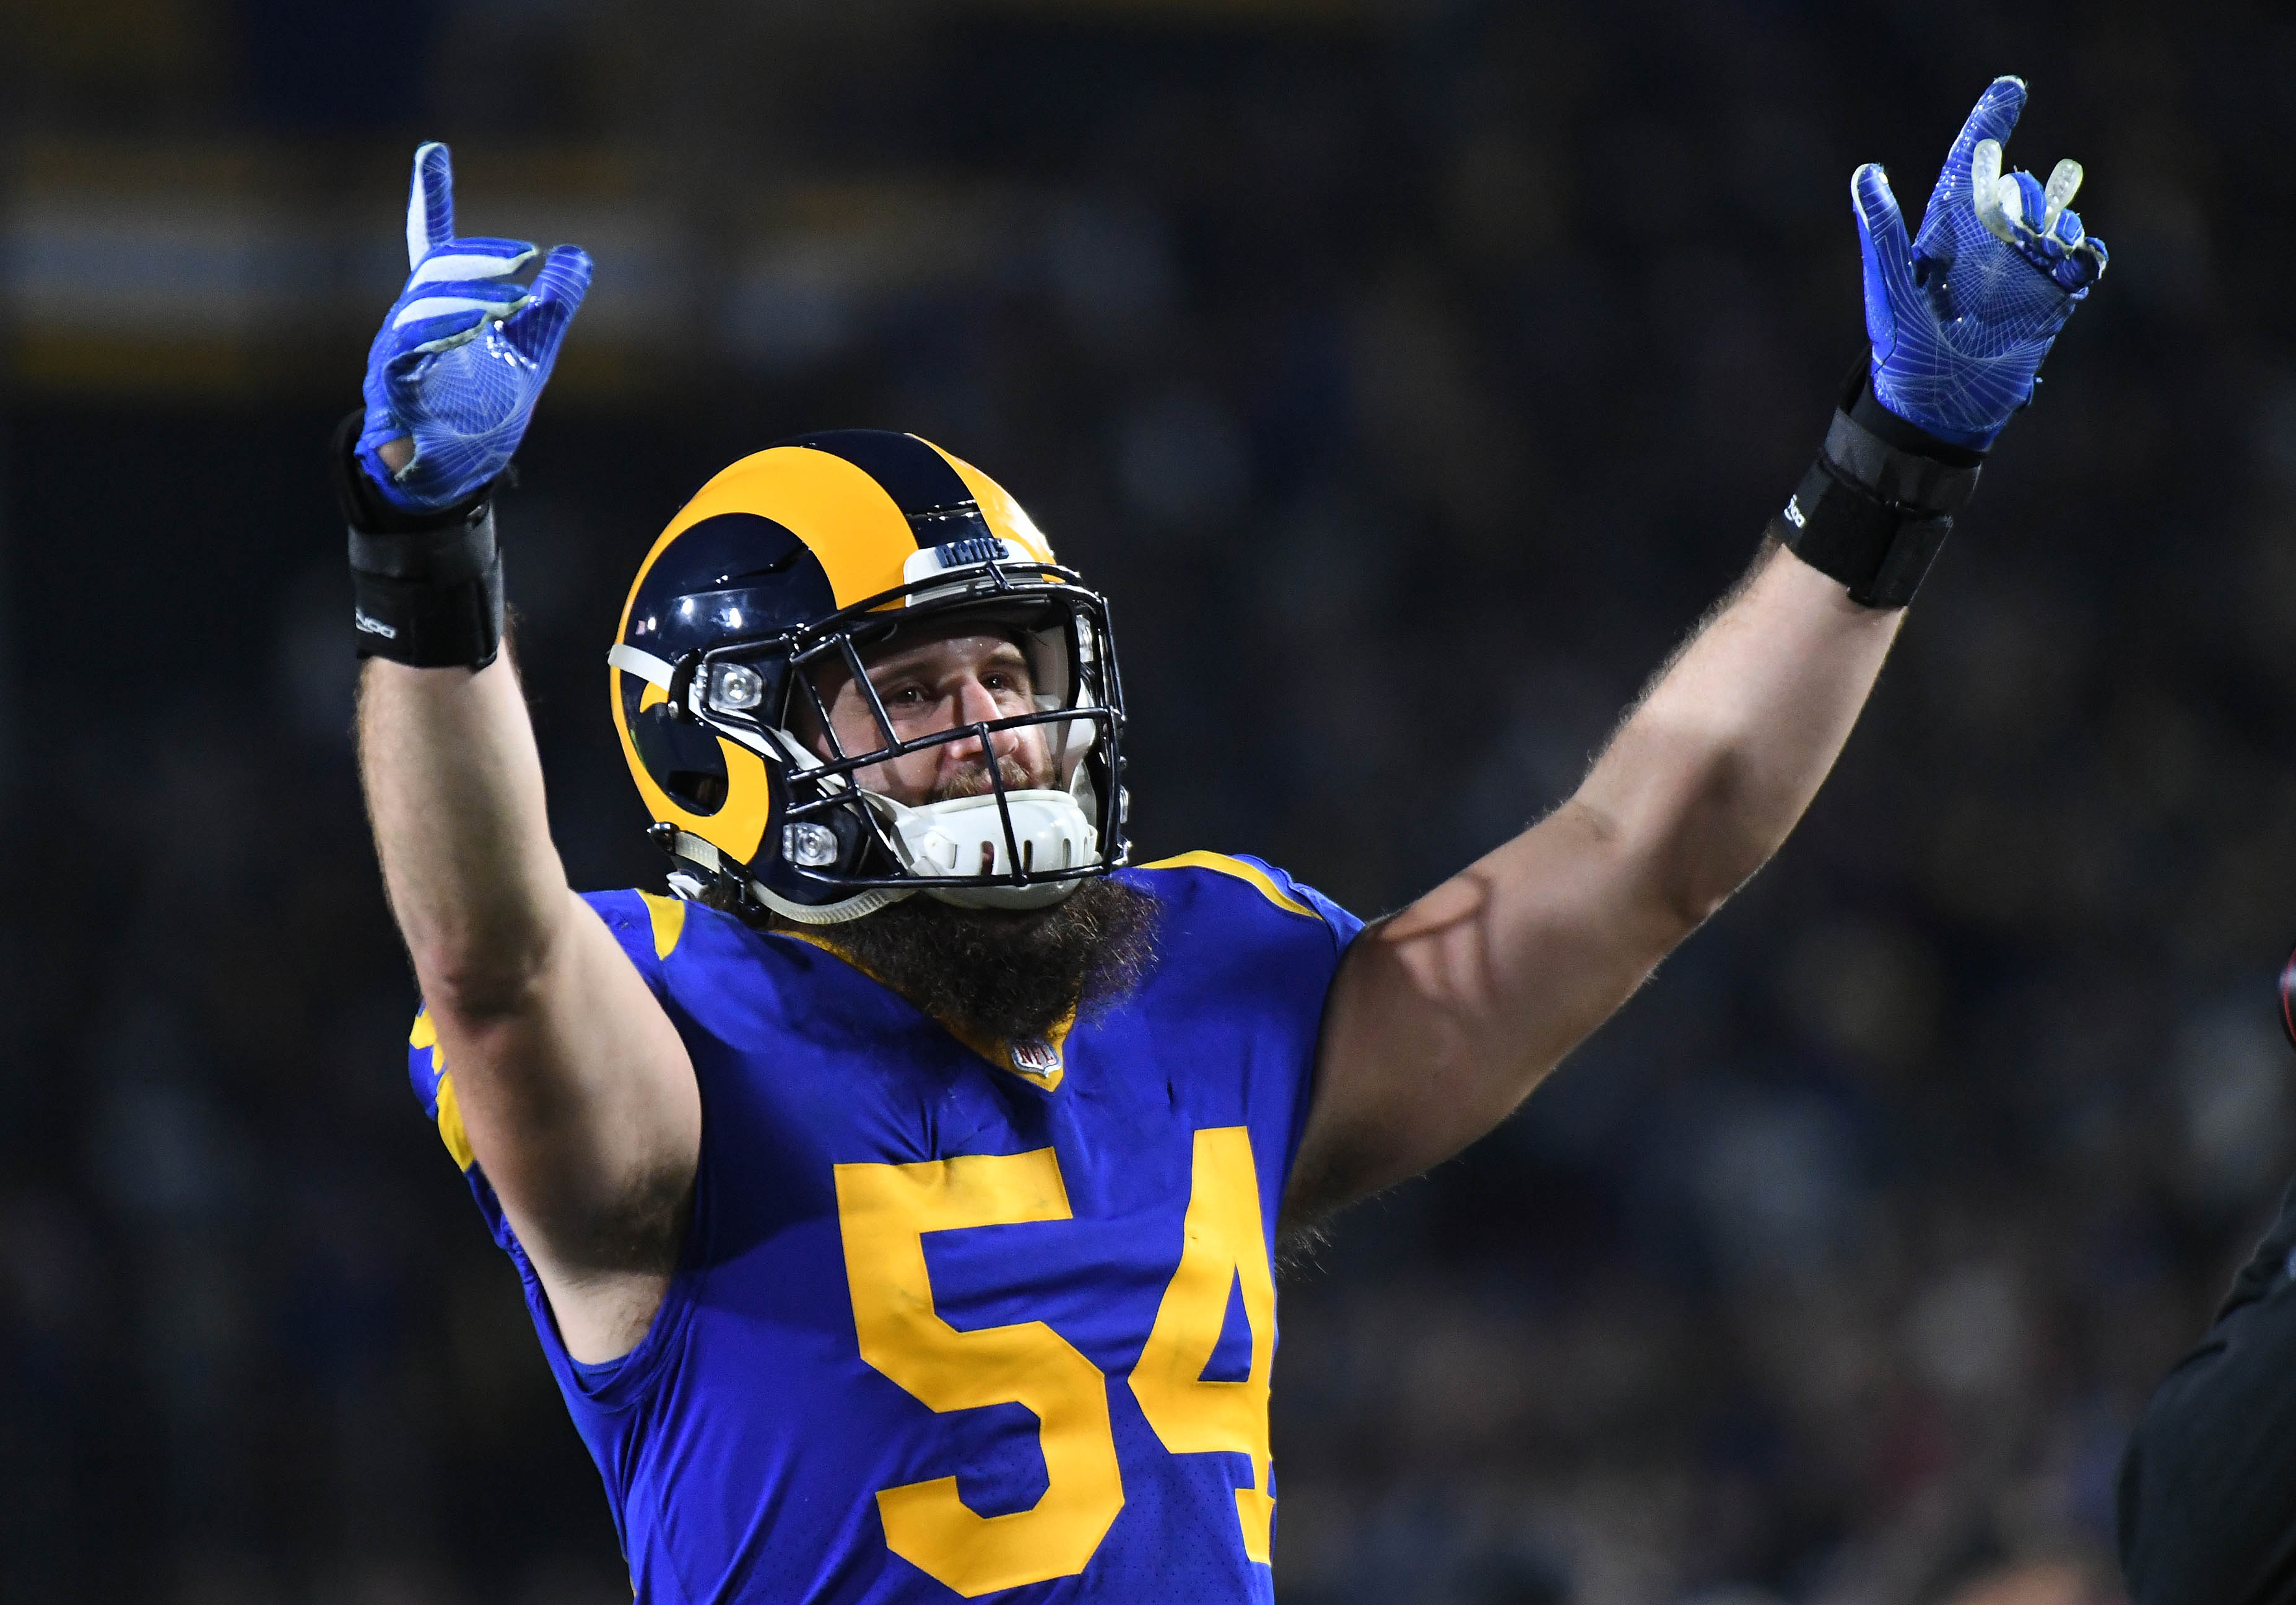 rams football jersey for sale